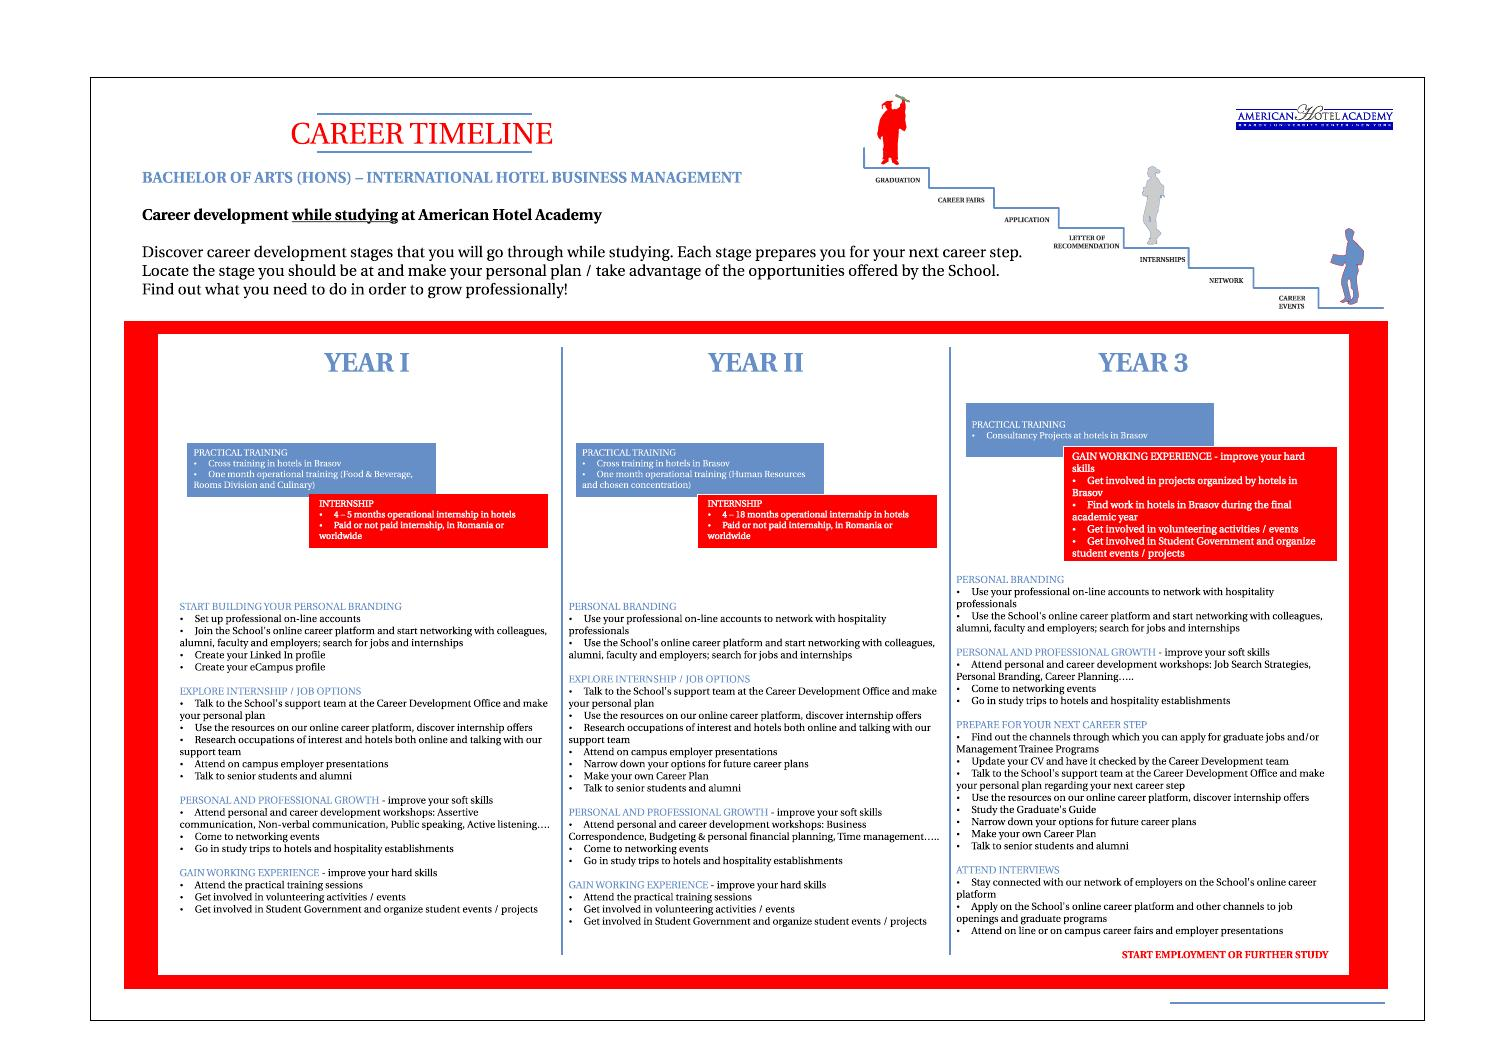 test career timeline american hotel academy career path american hotel academy 1 year ago petreleah